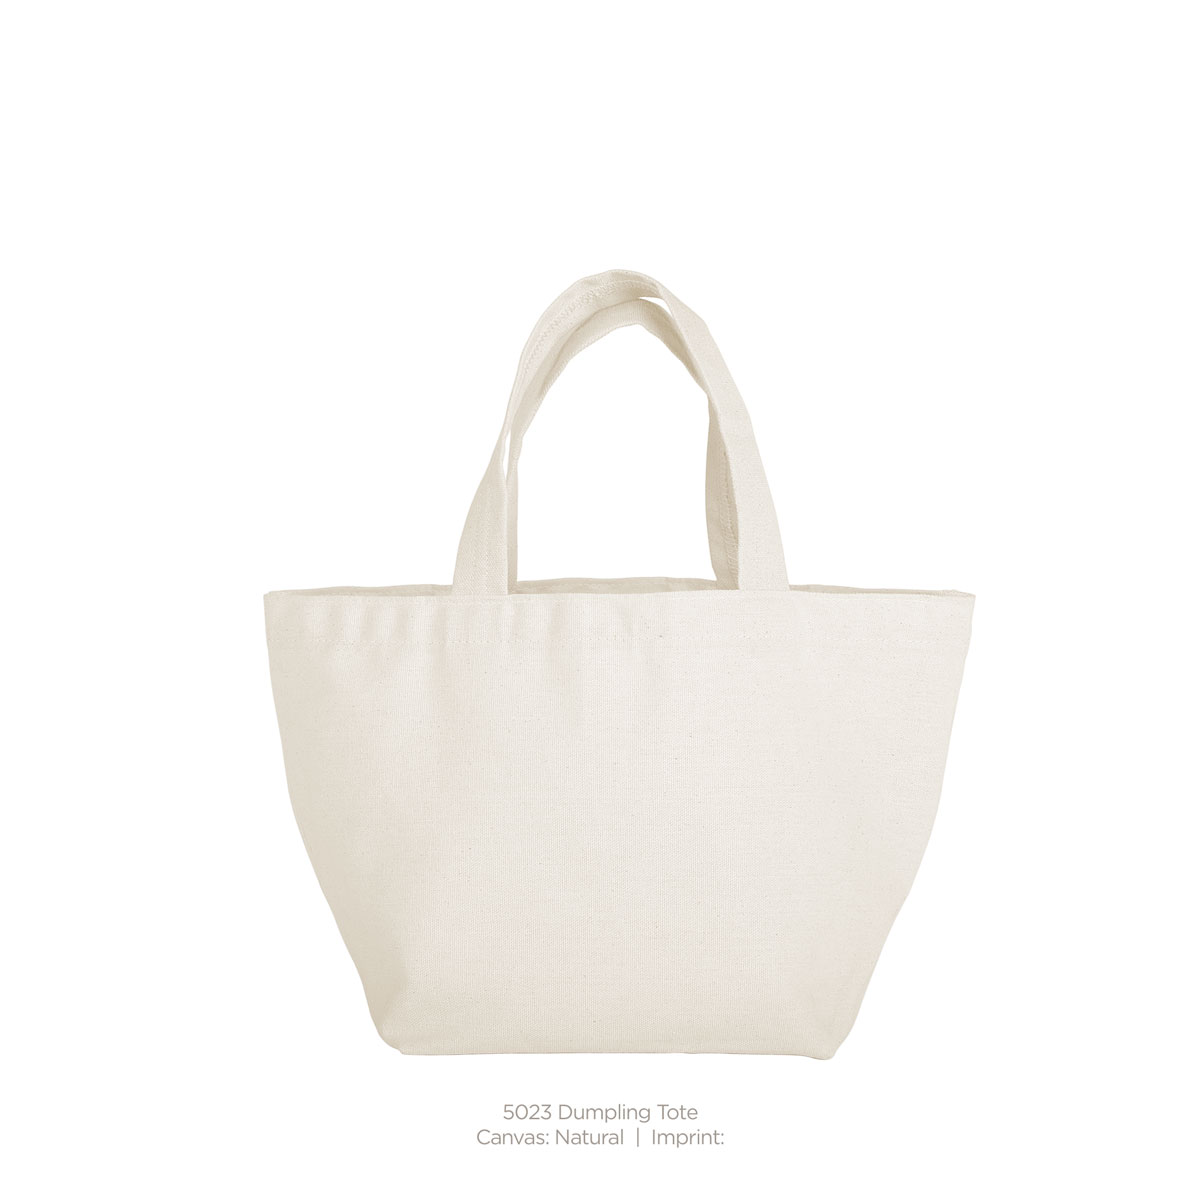 Dumpling Tote (natural canvas)